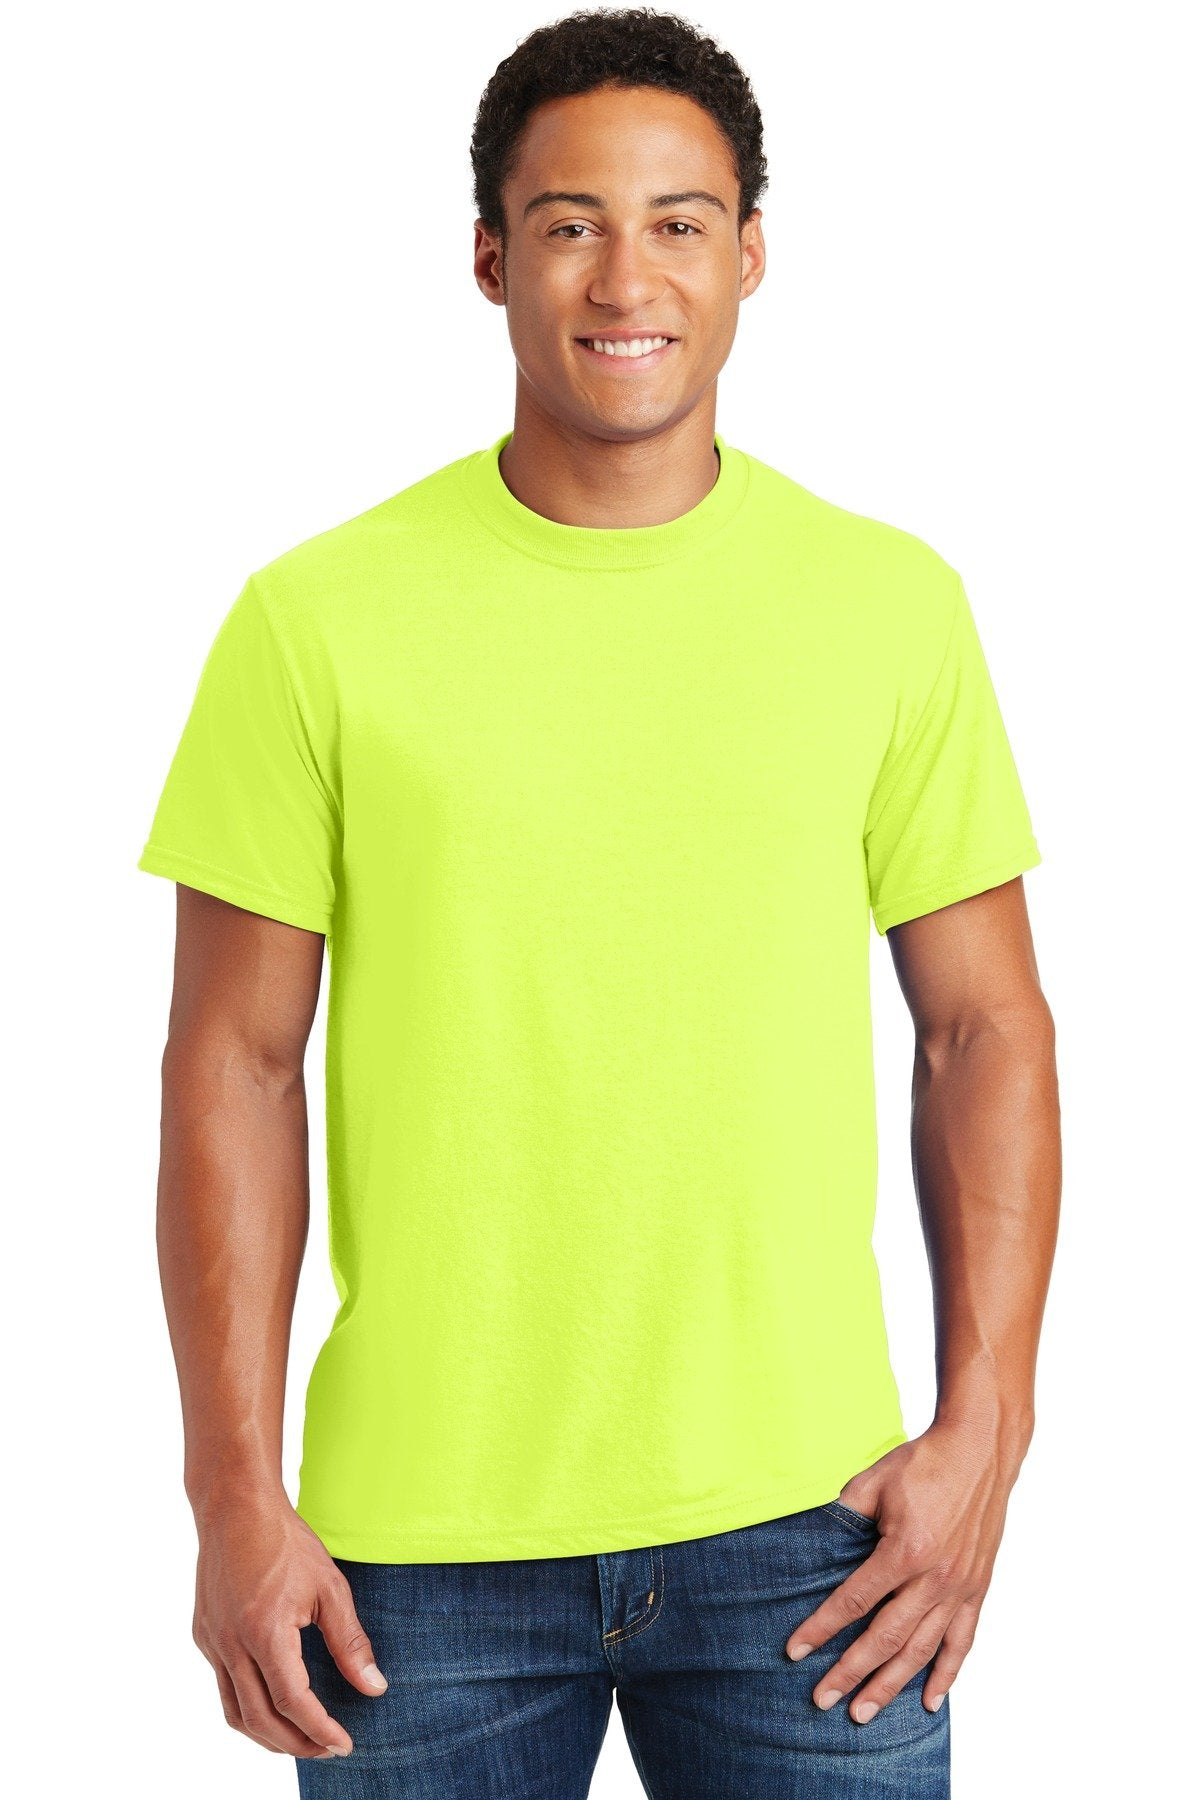 Safety Green - Jerzees 21M